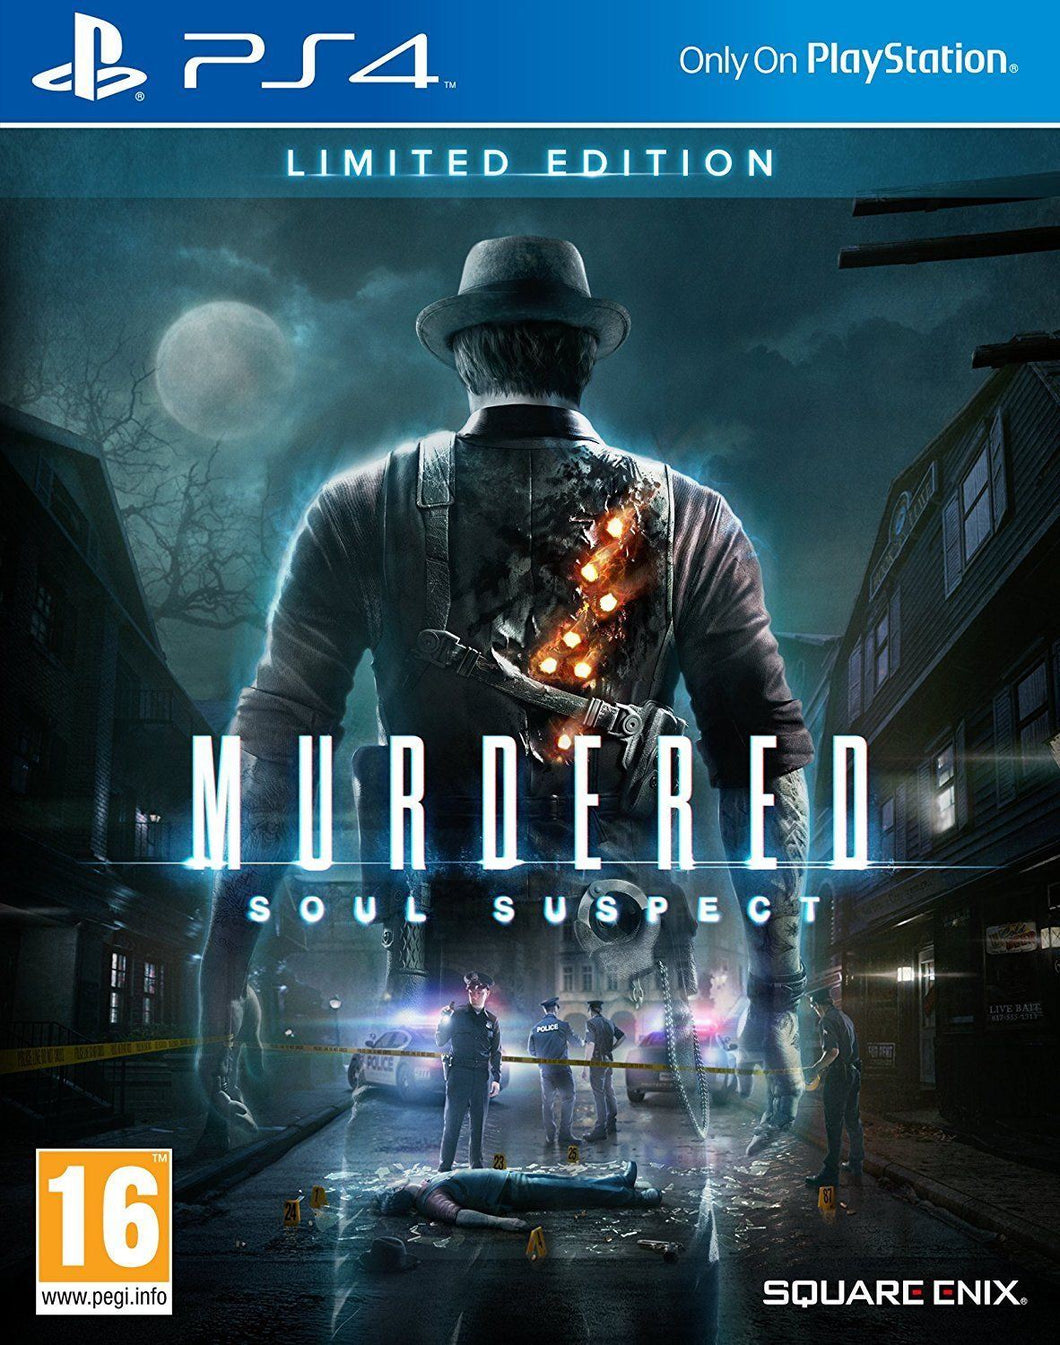 MURDERED SOUL SUSPECT - Limited Edition